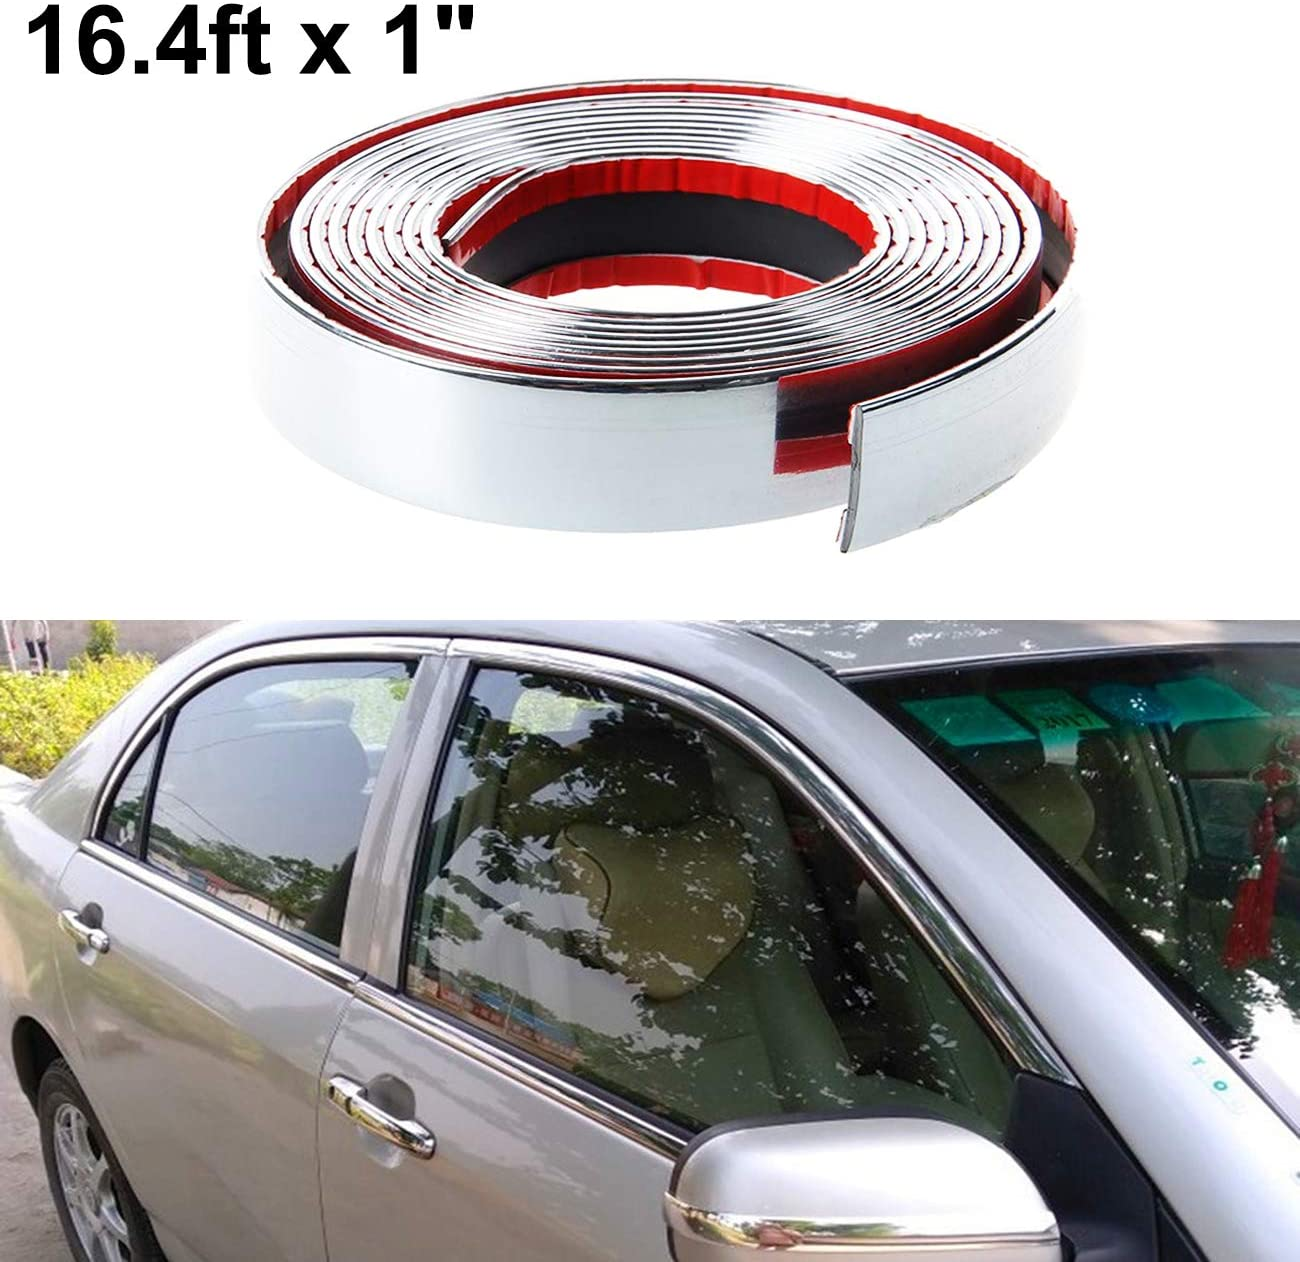 16ft x 25mm Decoration Silver Moulding Trim Bumper Protector Strip for Car SUV